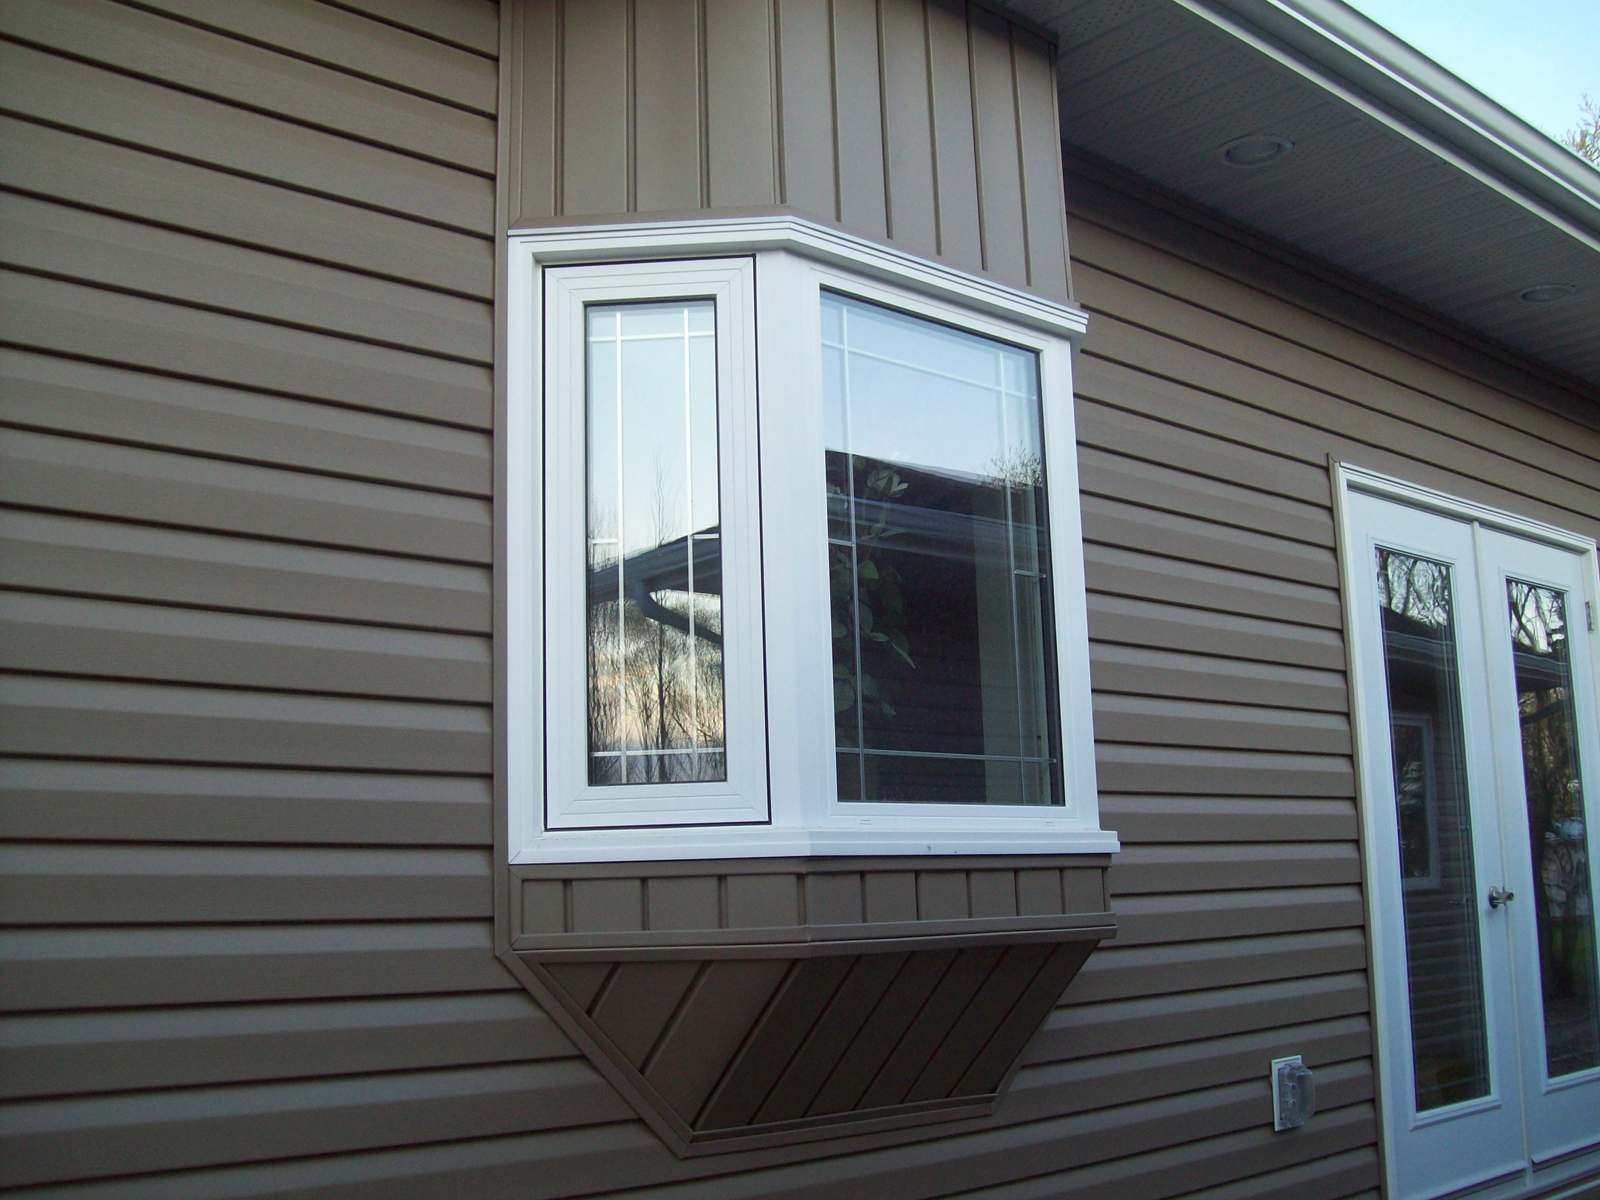 Siding vinyl siding fiber cement siding the home rachael Fiber cement siding vs vinyl siding cost comparison